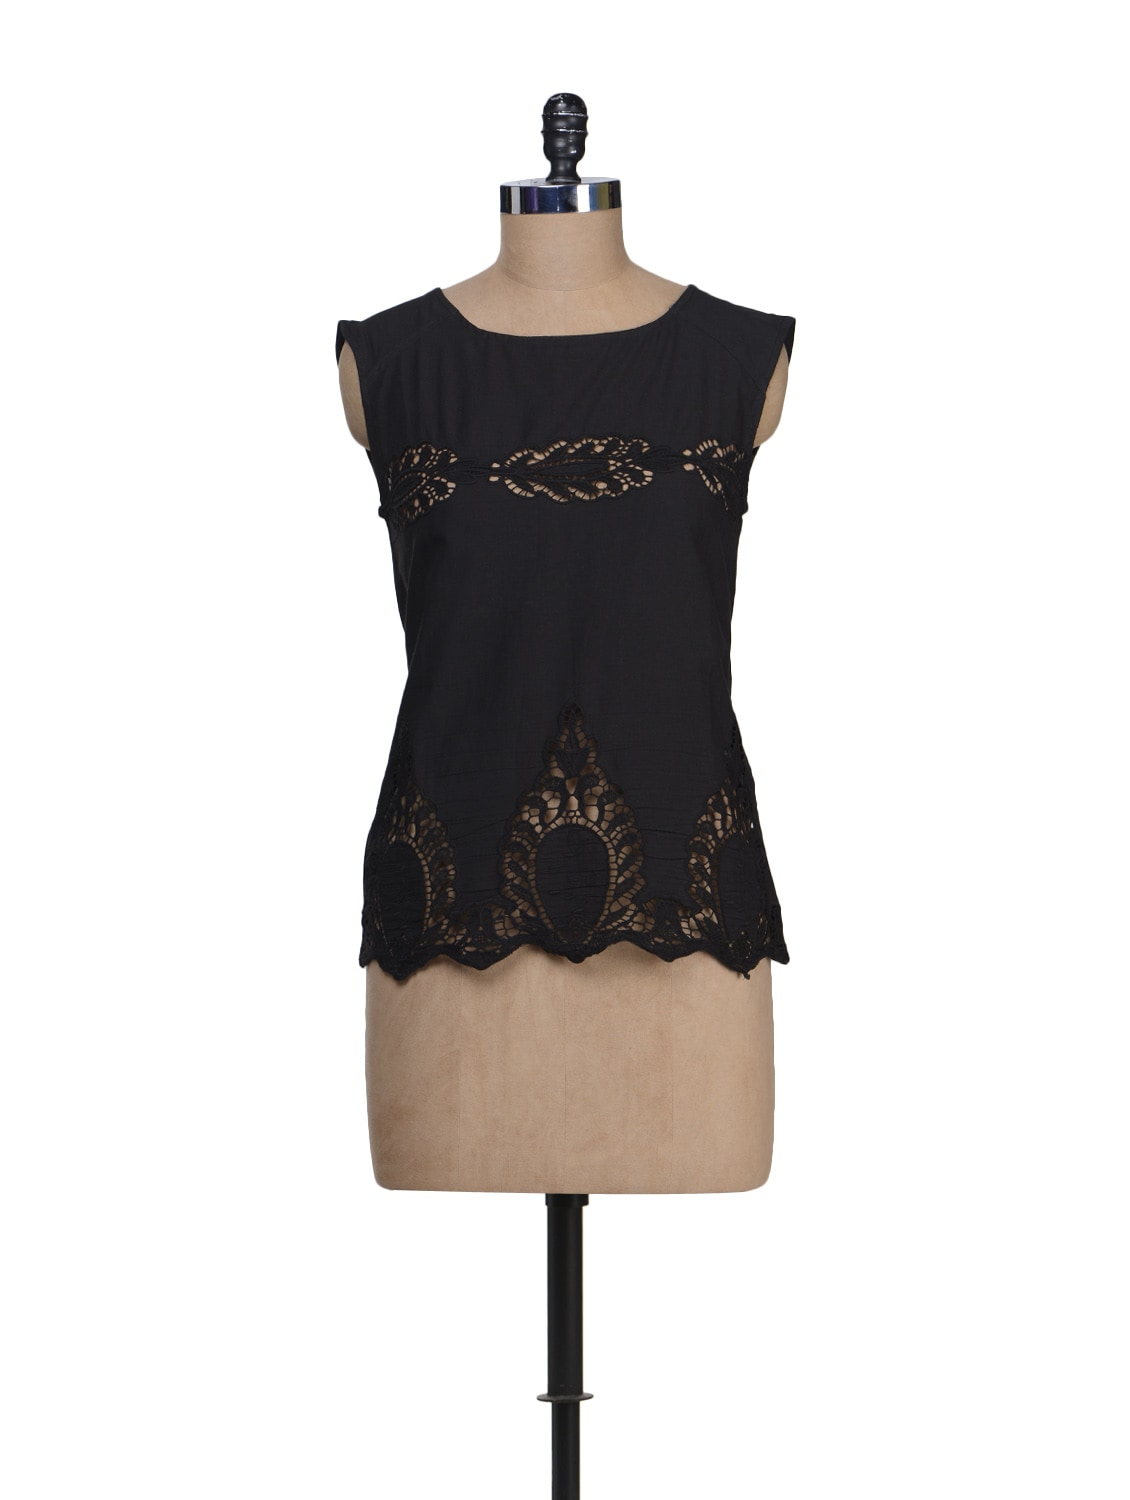 Simple Black Top With Elegant Cut Out Motifs - Stylechiks